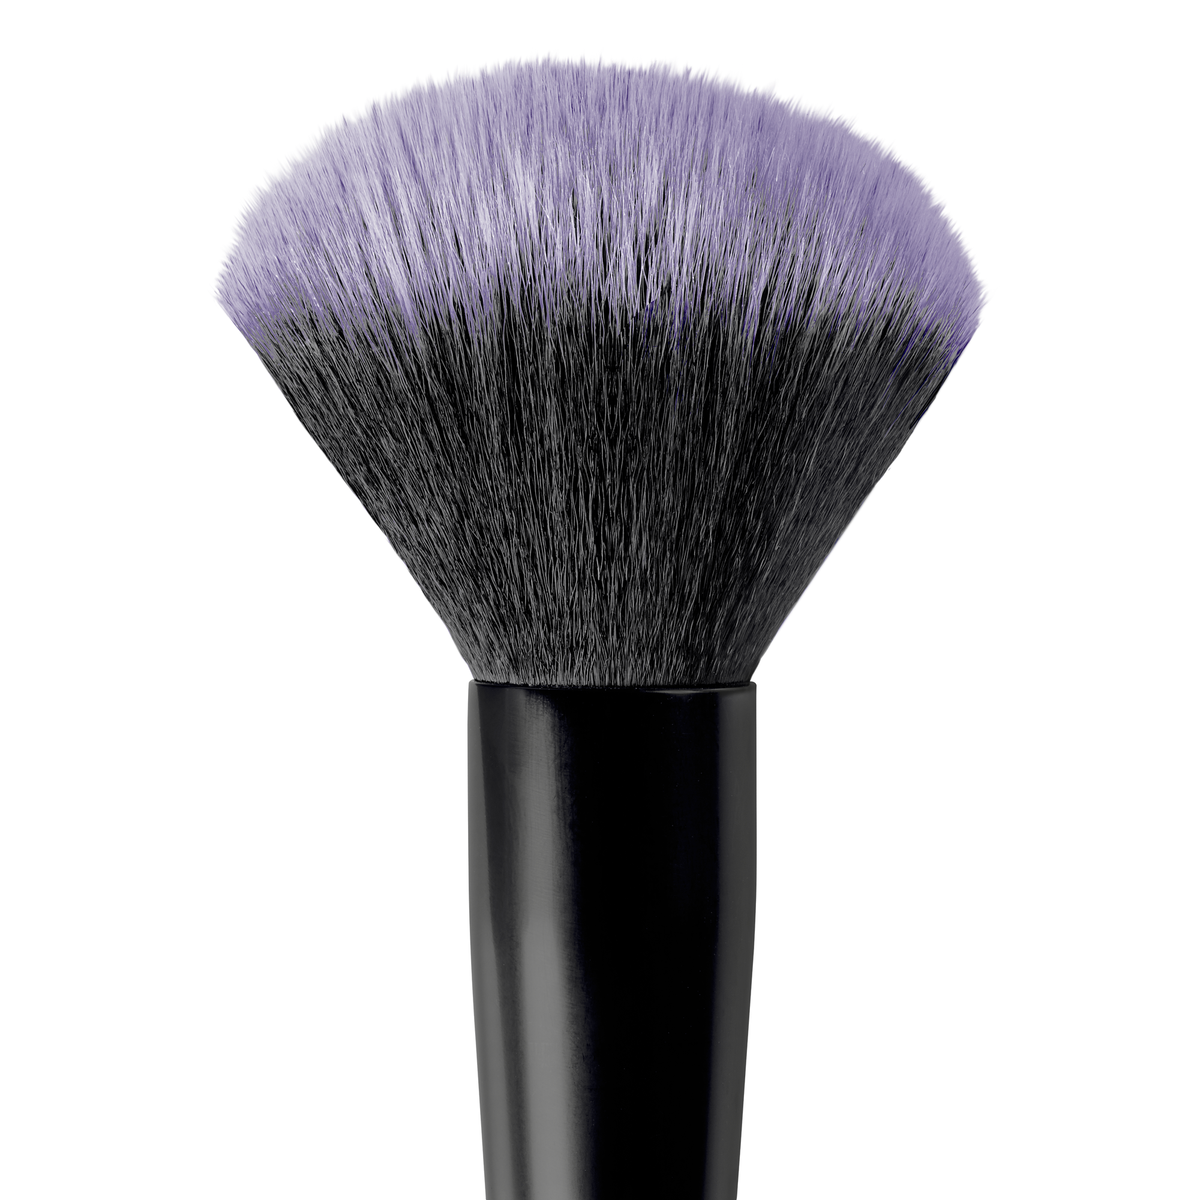 Vegan Powder Brush